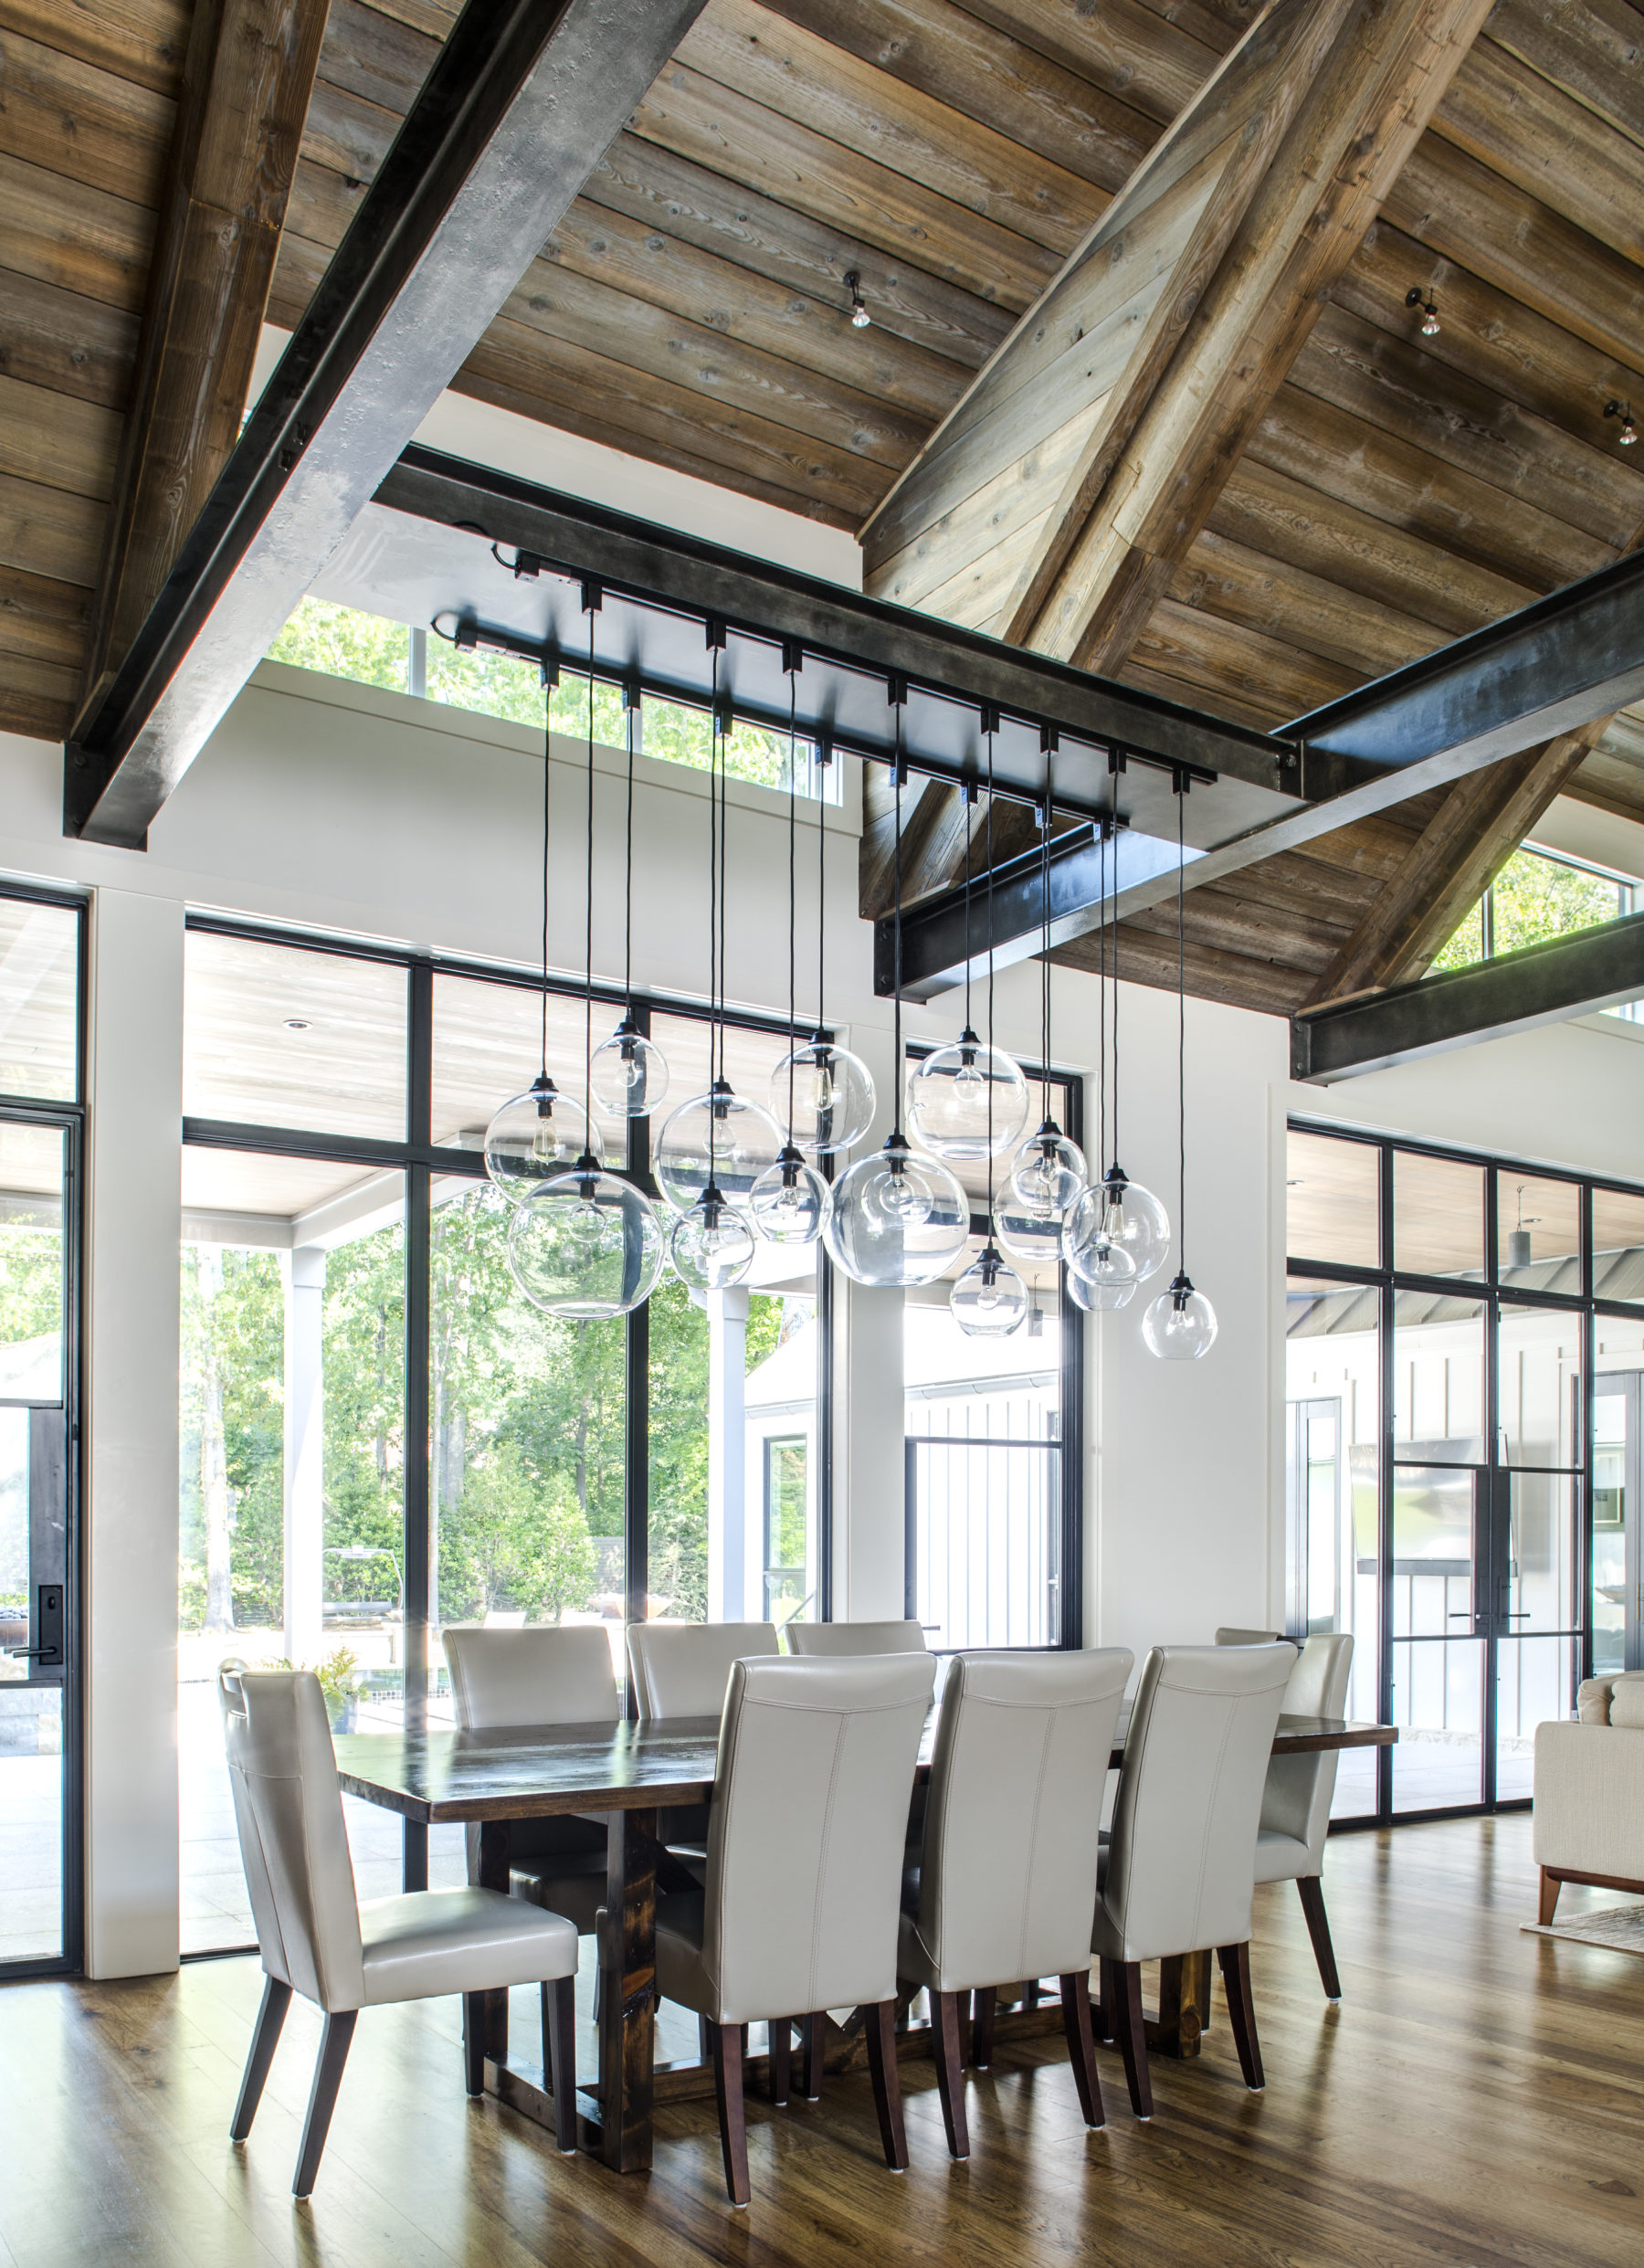 Metal framed windows, glass doors and transoms create a striking open dining area with hickory floor by Harrison Design.